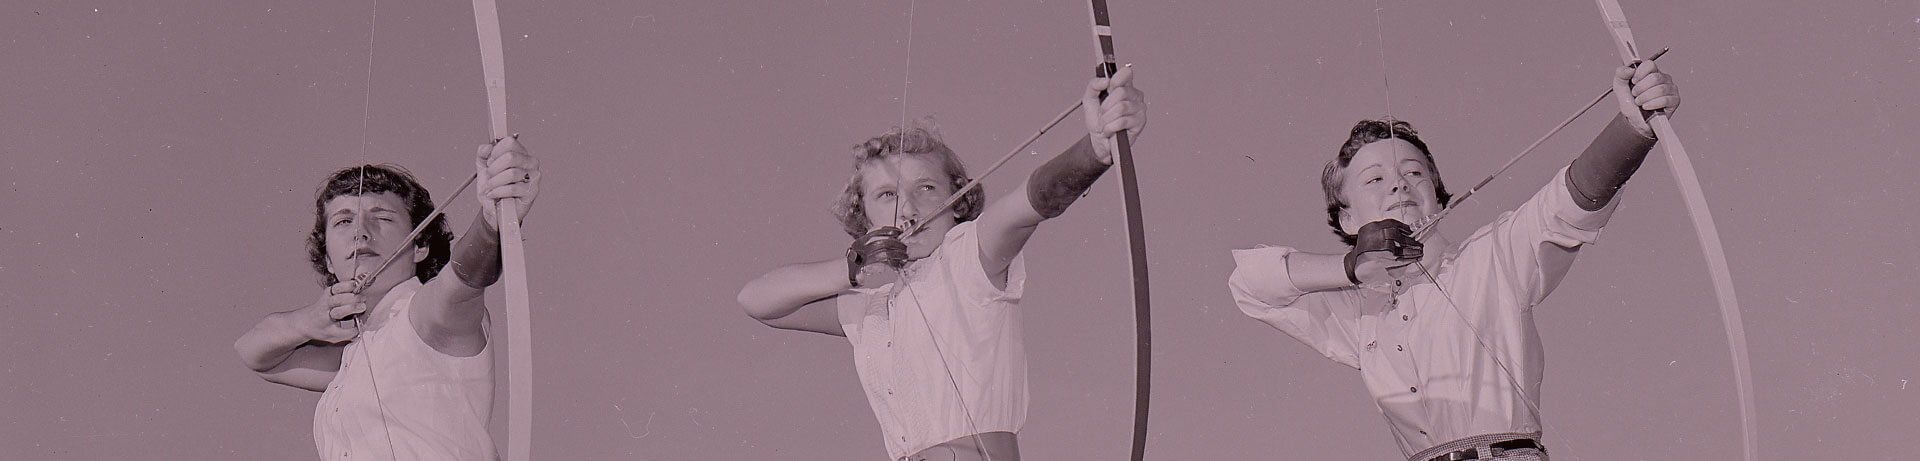 Photo of women shooting arrows